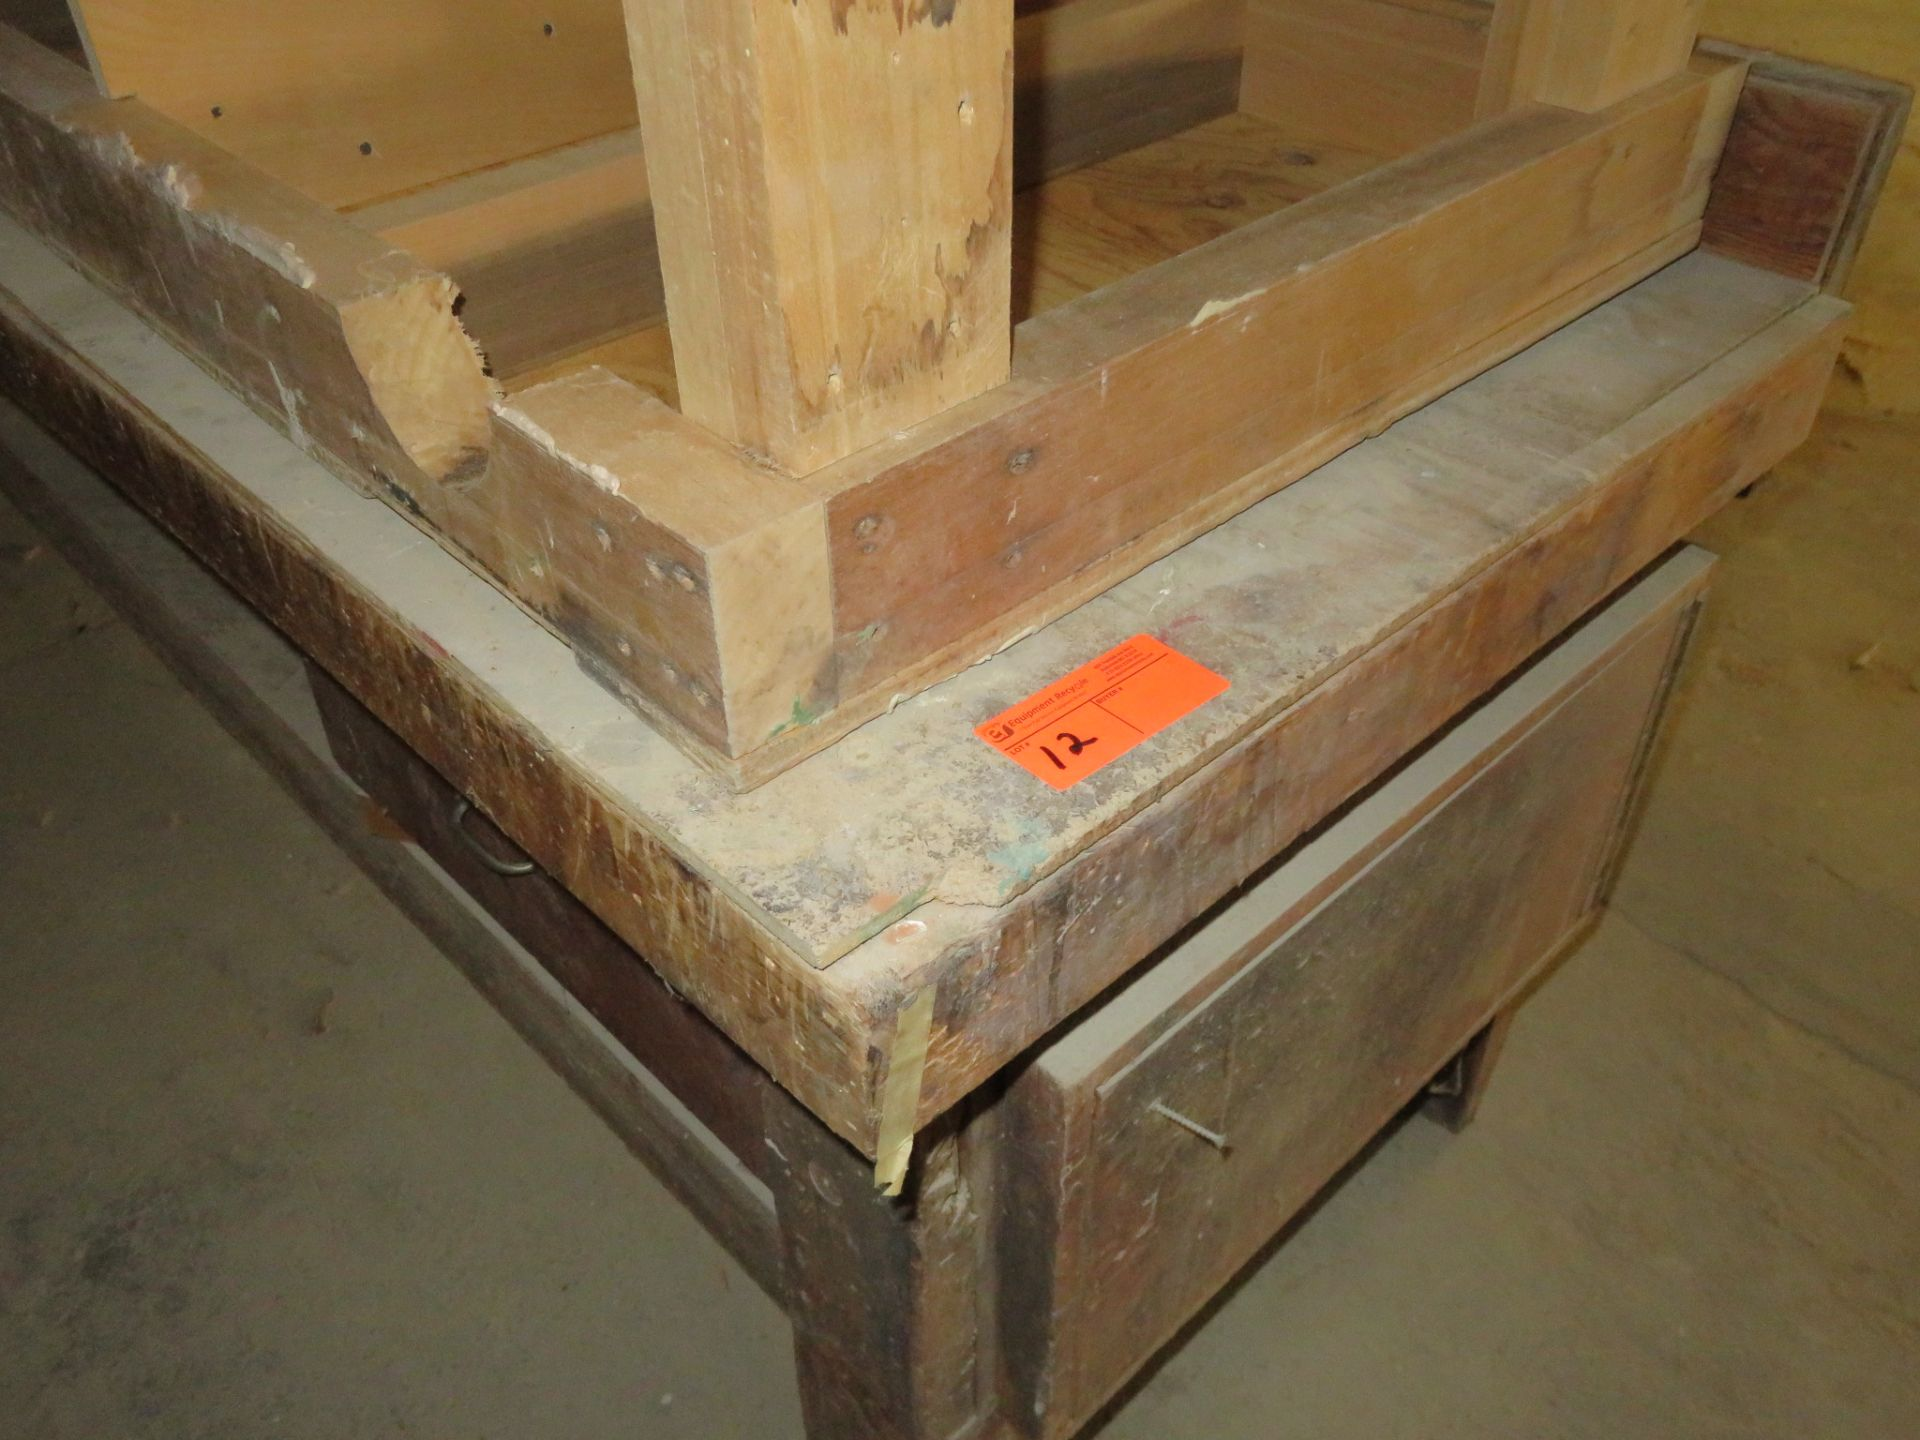 "Heavy Duty Wooden Work Tables Lot of 2 approx 96""x 35""x 34"" & 72""x 30""x 35"" - Image 2 of 2"